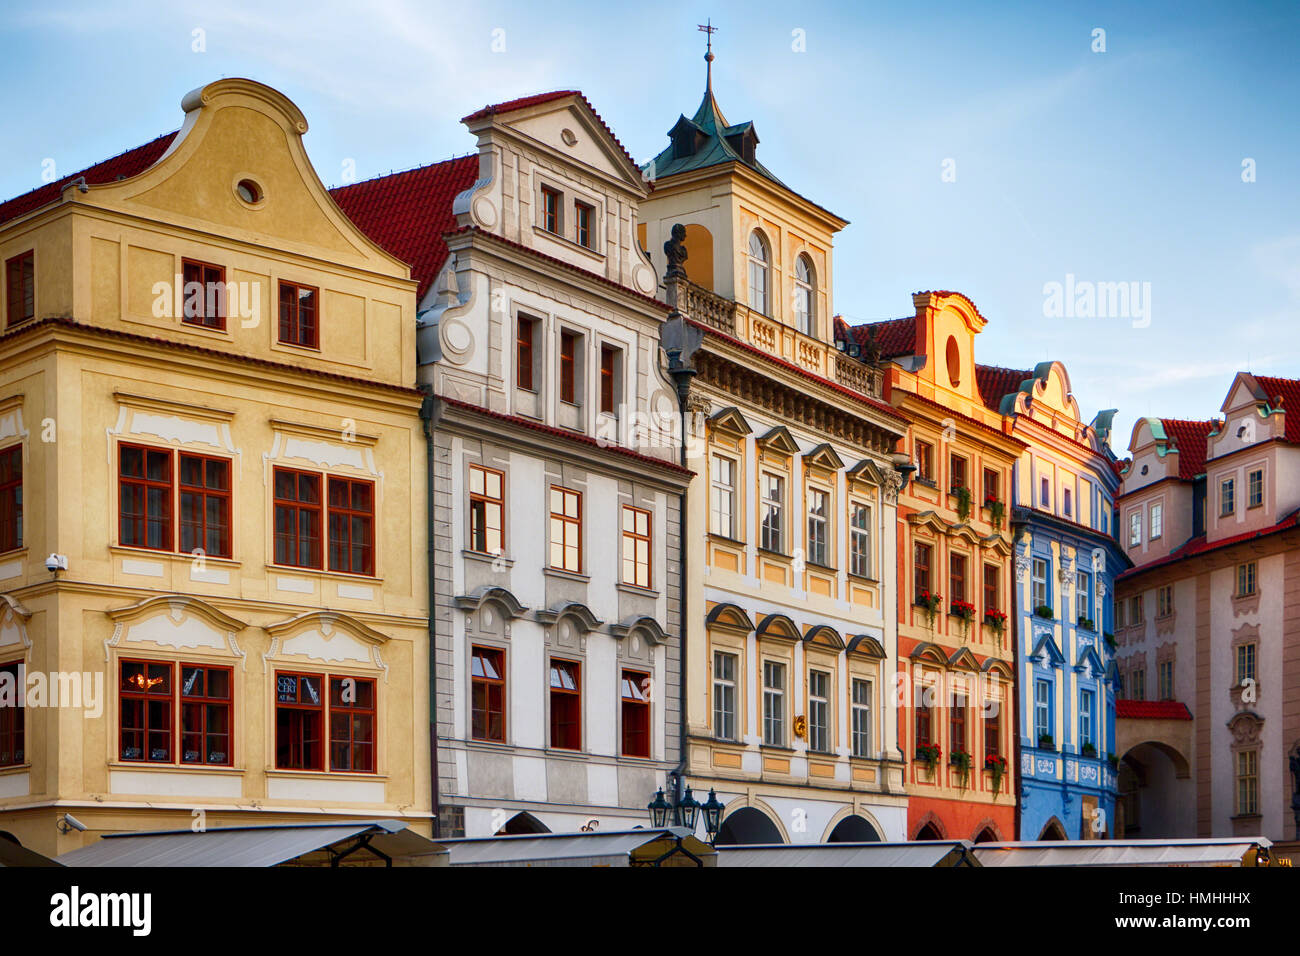 Low Angle View of Colorful Houses on Old Town Square, Prague, Czech Republic - Stock Image